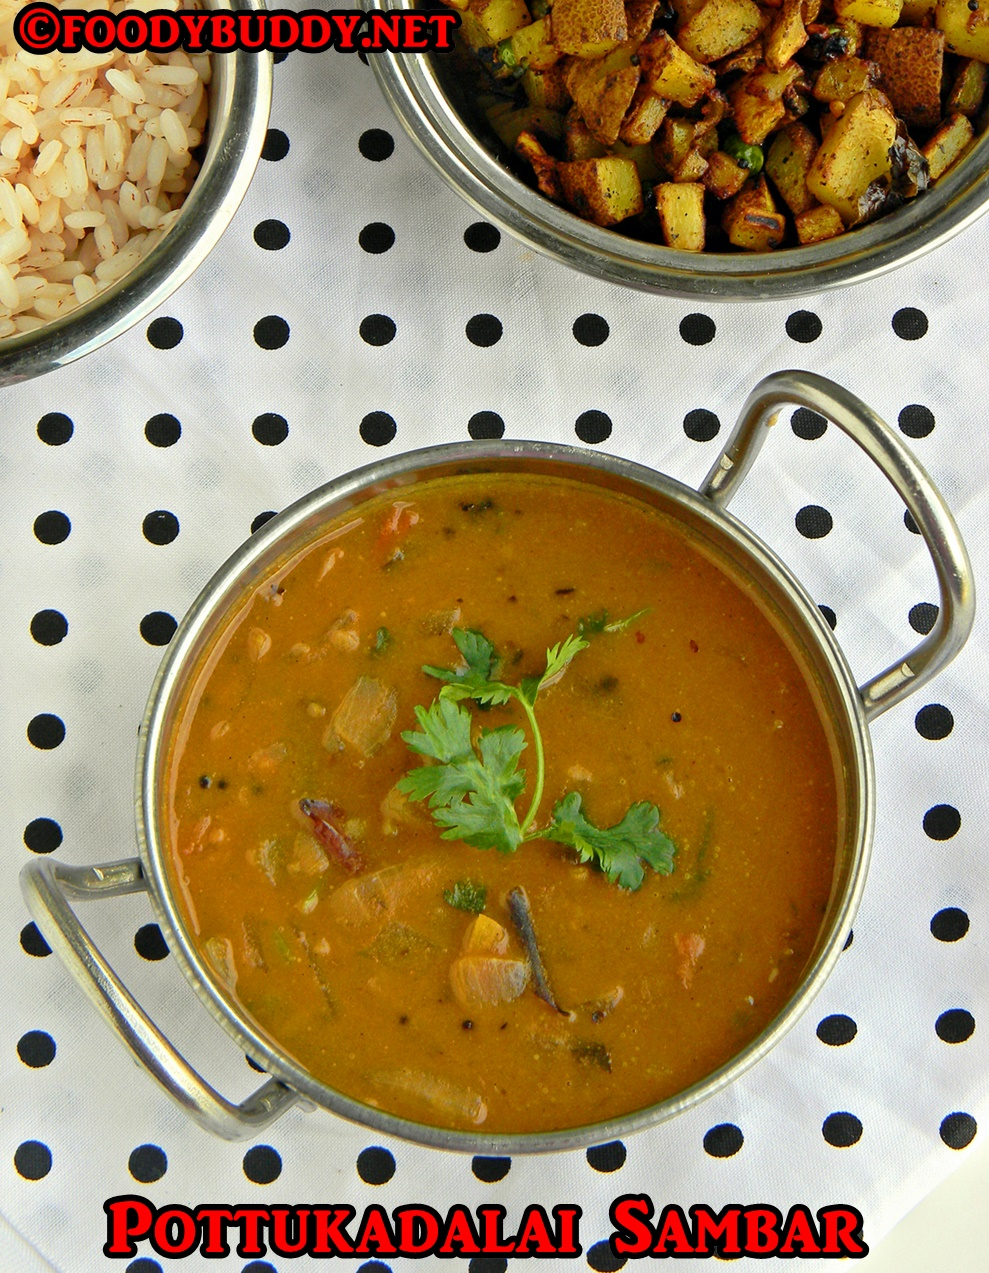 sambar recipe without dal and veggies